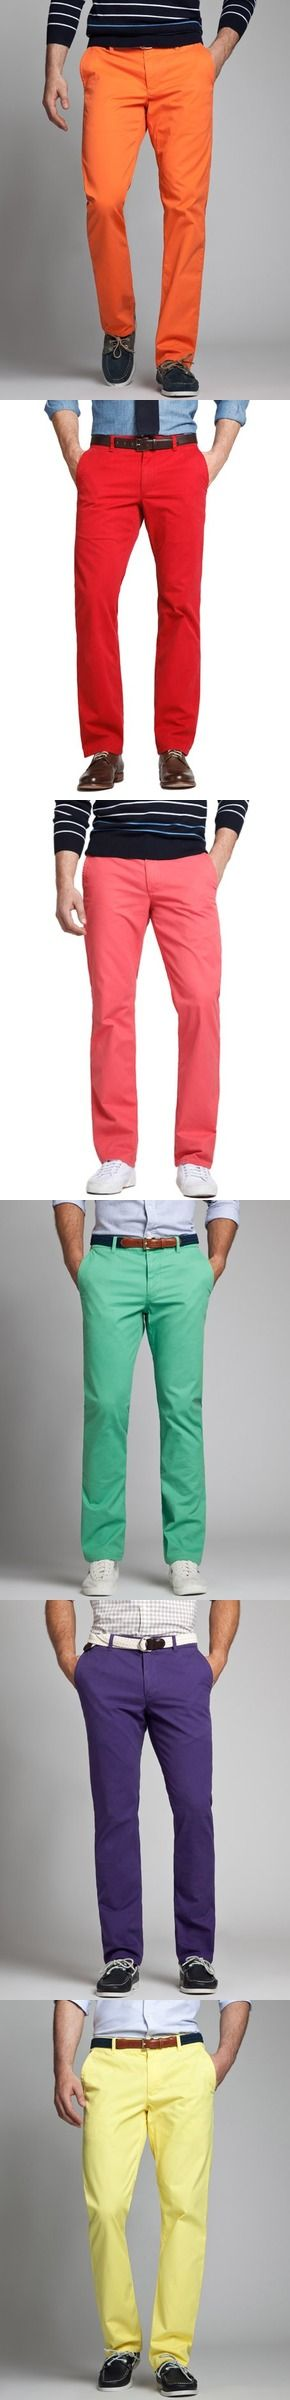 Coloured chinos.